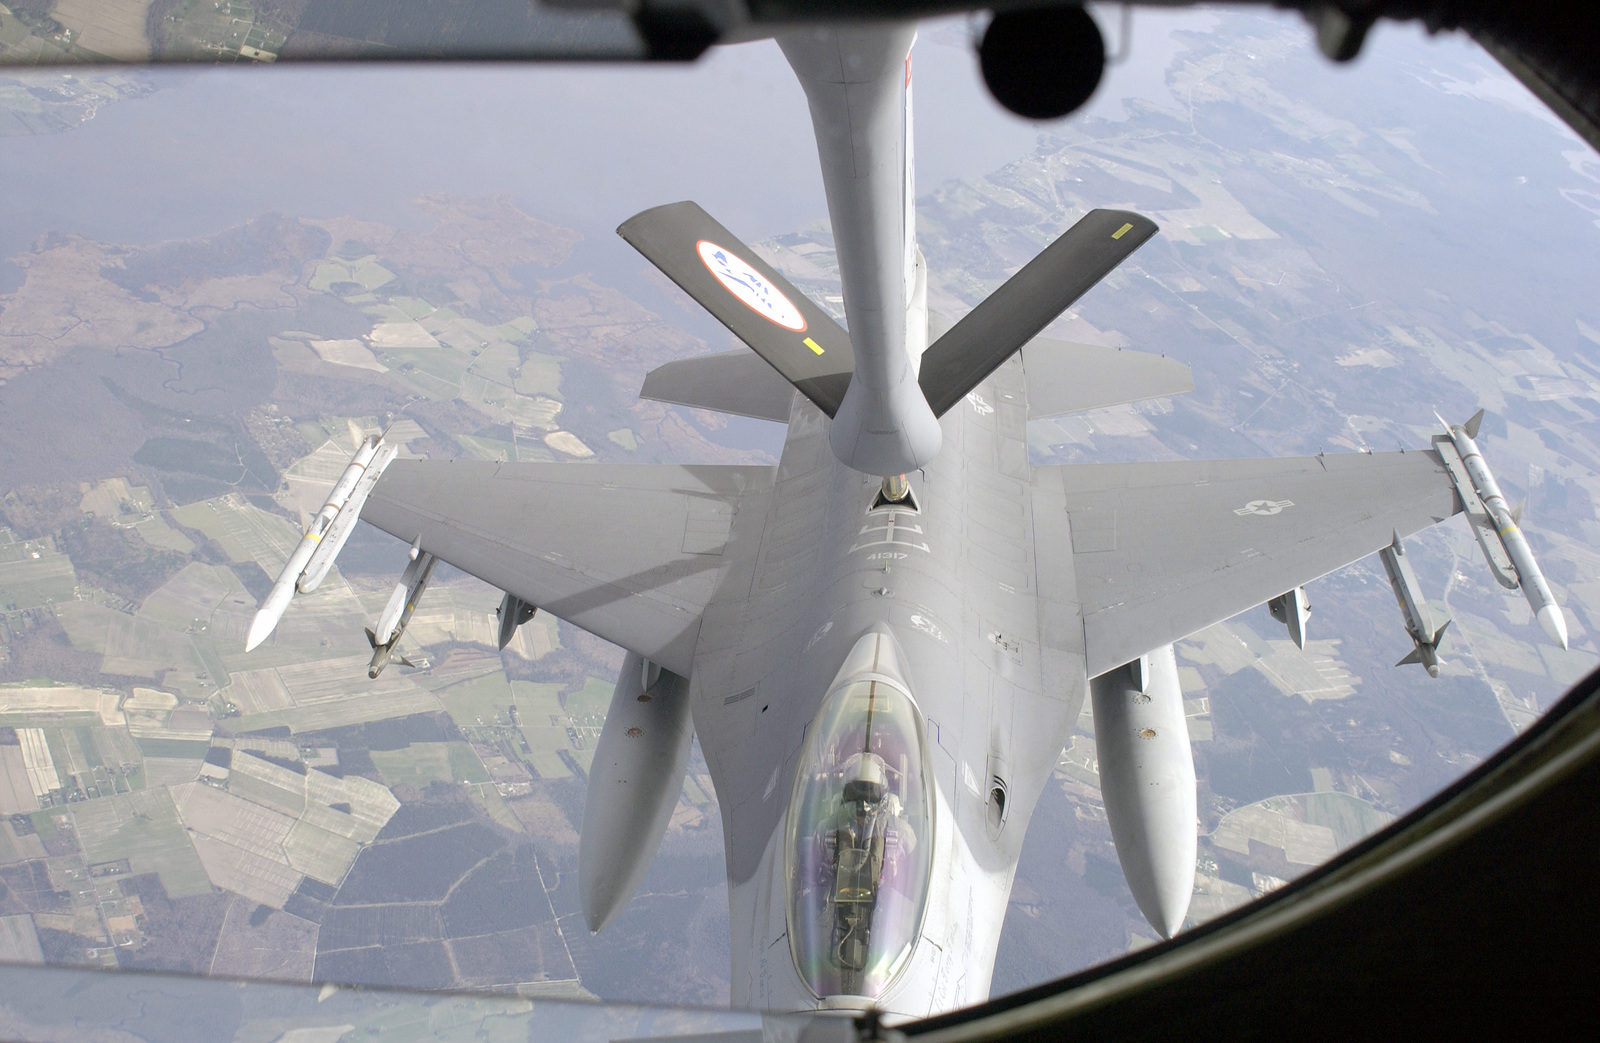 A US Air Force (USAF) F-16C Fighting Falcon aircraft, 177th Fighter Wing (FW), Atlantic City International Airport, New Jersey (NJ), receives JP8 fuel above the USA from a USAF KC-135R Stratotanker, 157th Air Refueling Wing (ARW), Pease Air National Guard Base (ANGB), New Hampshire (NH). This is a Combat Air Patrol (CAP) tanker mission in support of Operation NOBLE EAGLE. The F-16 is armed with AIM-120A Advanced Medium Range Air-to-Air Missiles (AMRAAM) on the wingtips and AIM-9 Sidewinder Missiles on the outboard pylons. In addition, it has two 370-gallon External Fuel Tanks for long loitering flight time